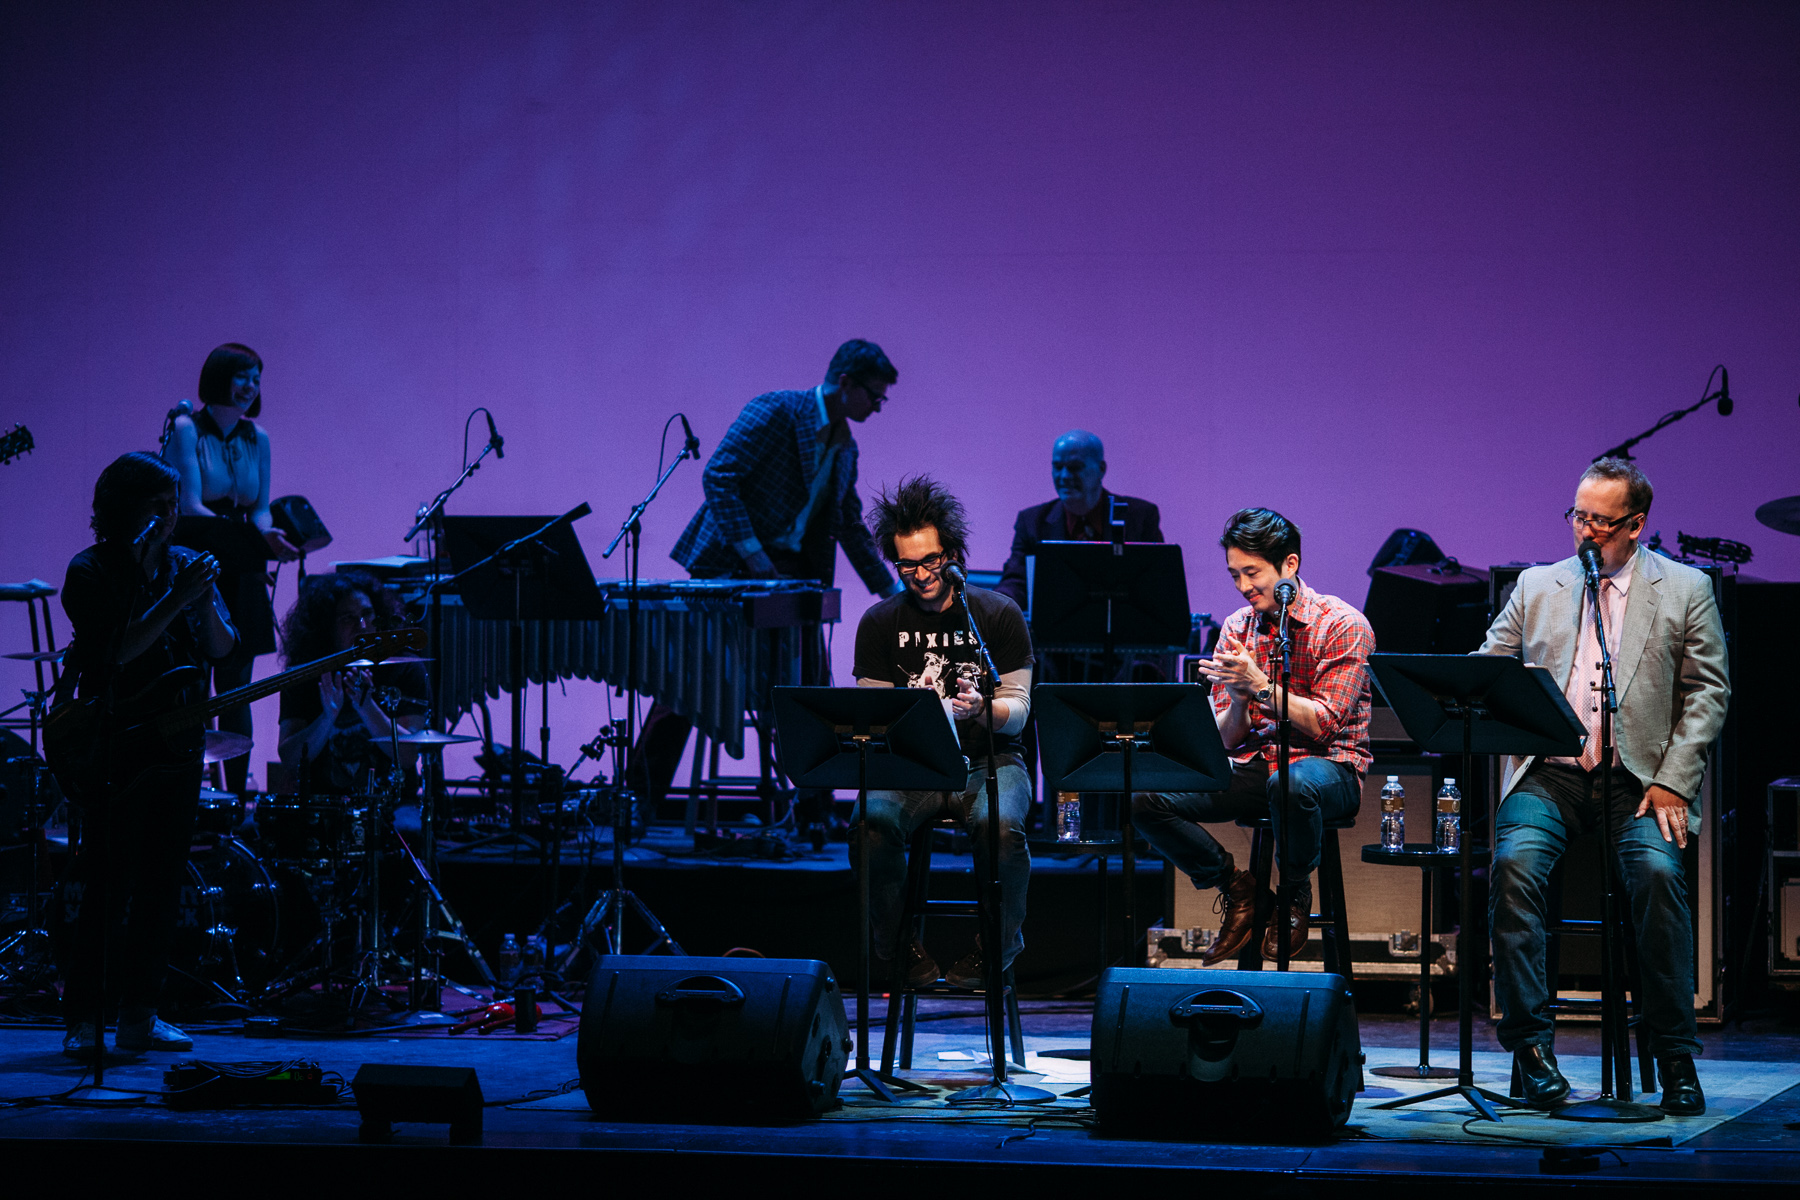 Motion_City_Soundtrack_And_Steven_Yeun_Perform_On_Wits_058.JPG